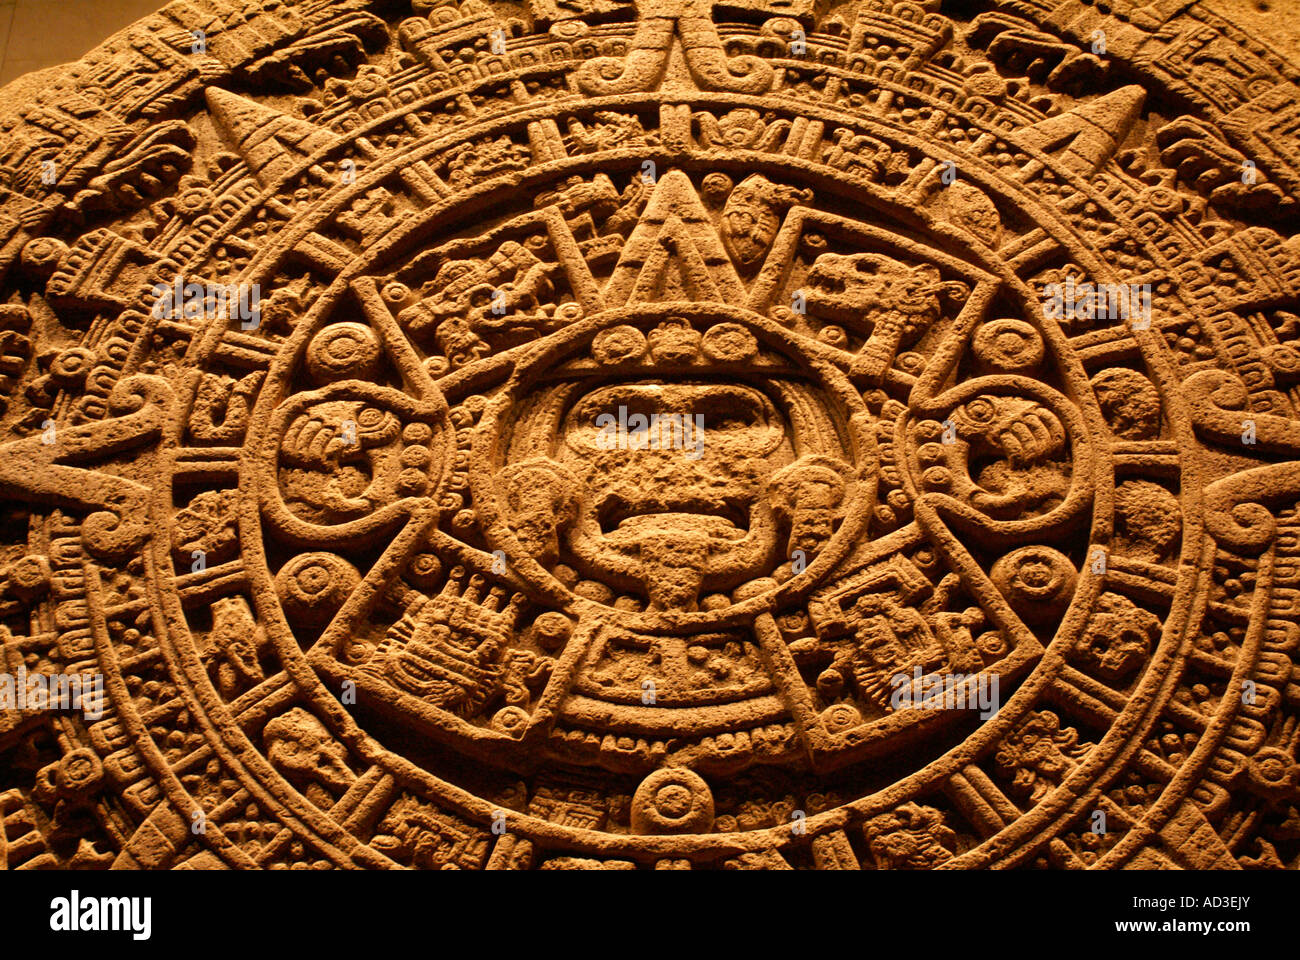 Aztec Calendar Stone.Aztec Calendar Stone Or Sun Stone National Museum Of Anthropology